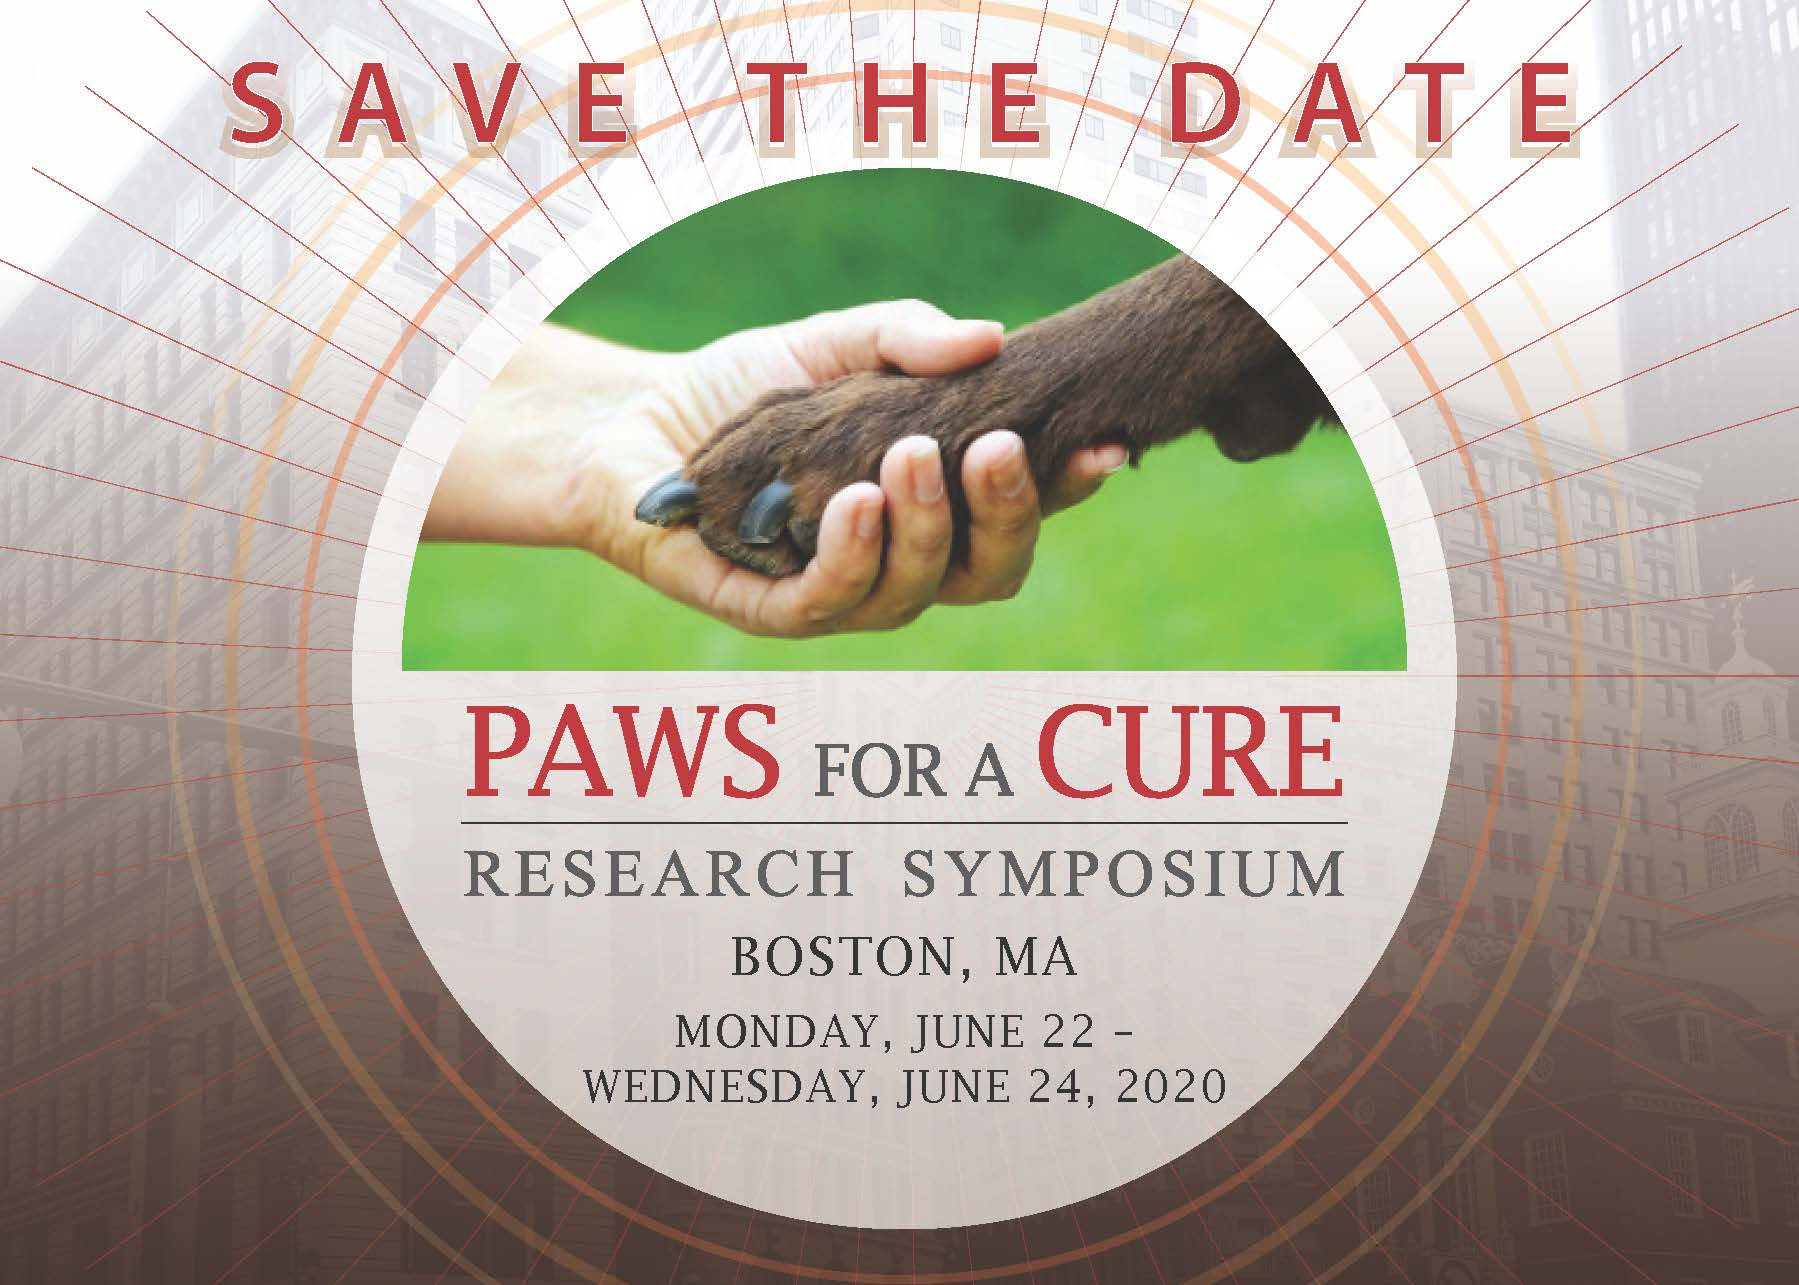 Paws for a Cure 2020 Research Symposium